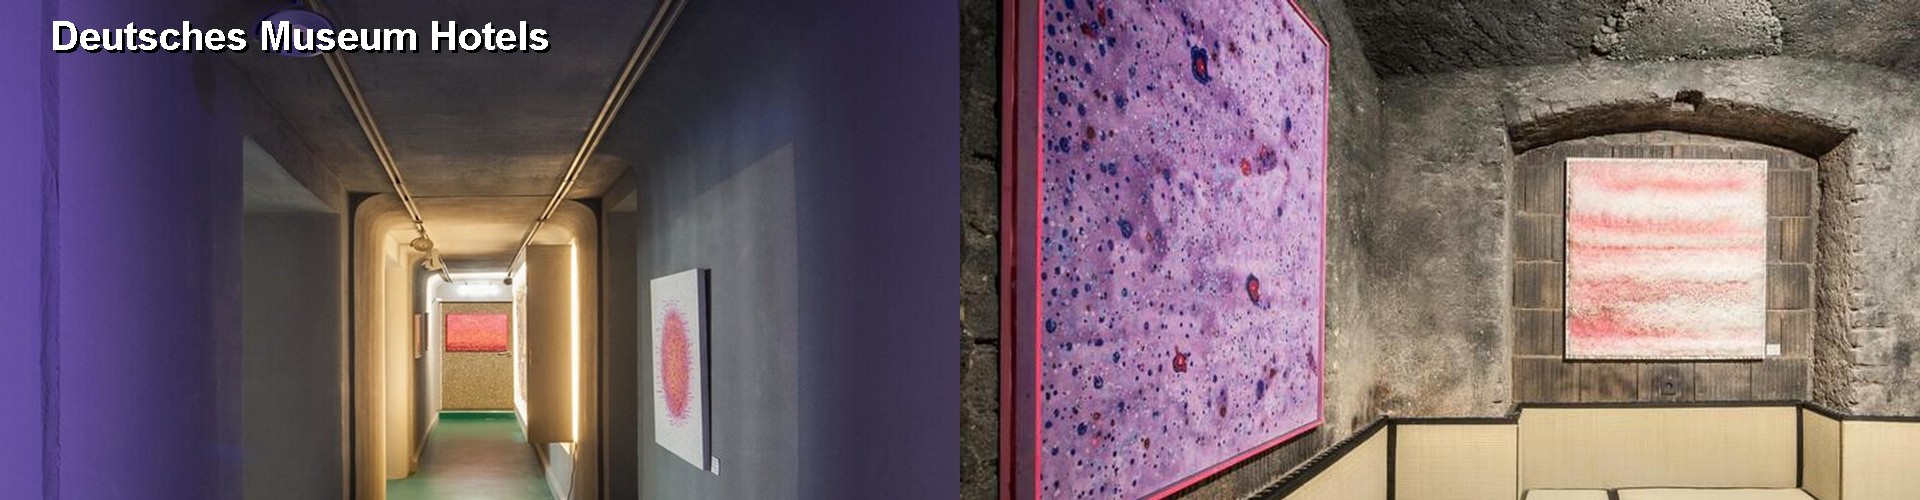 5 Best Hotels near Deutsches Museum